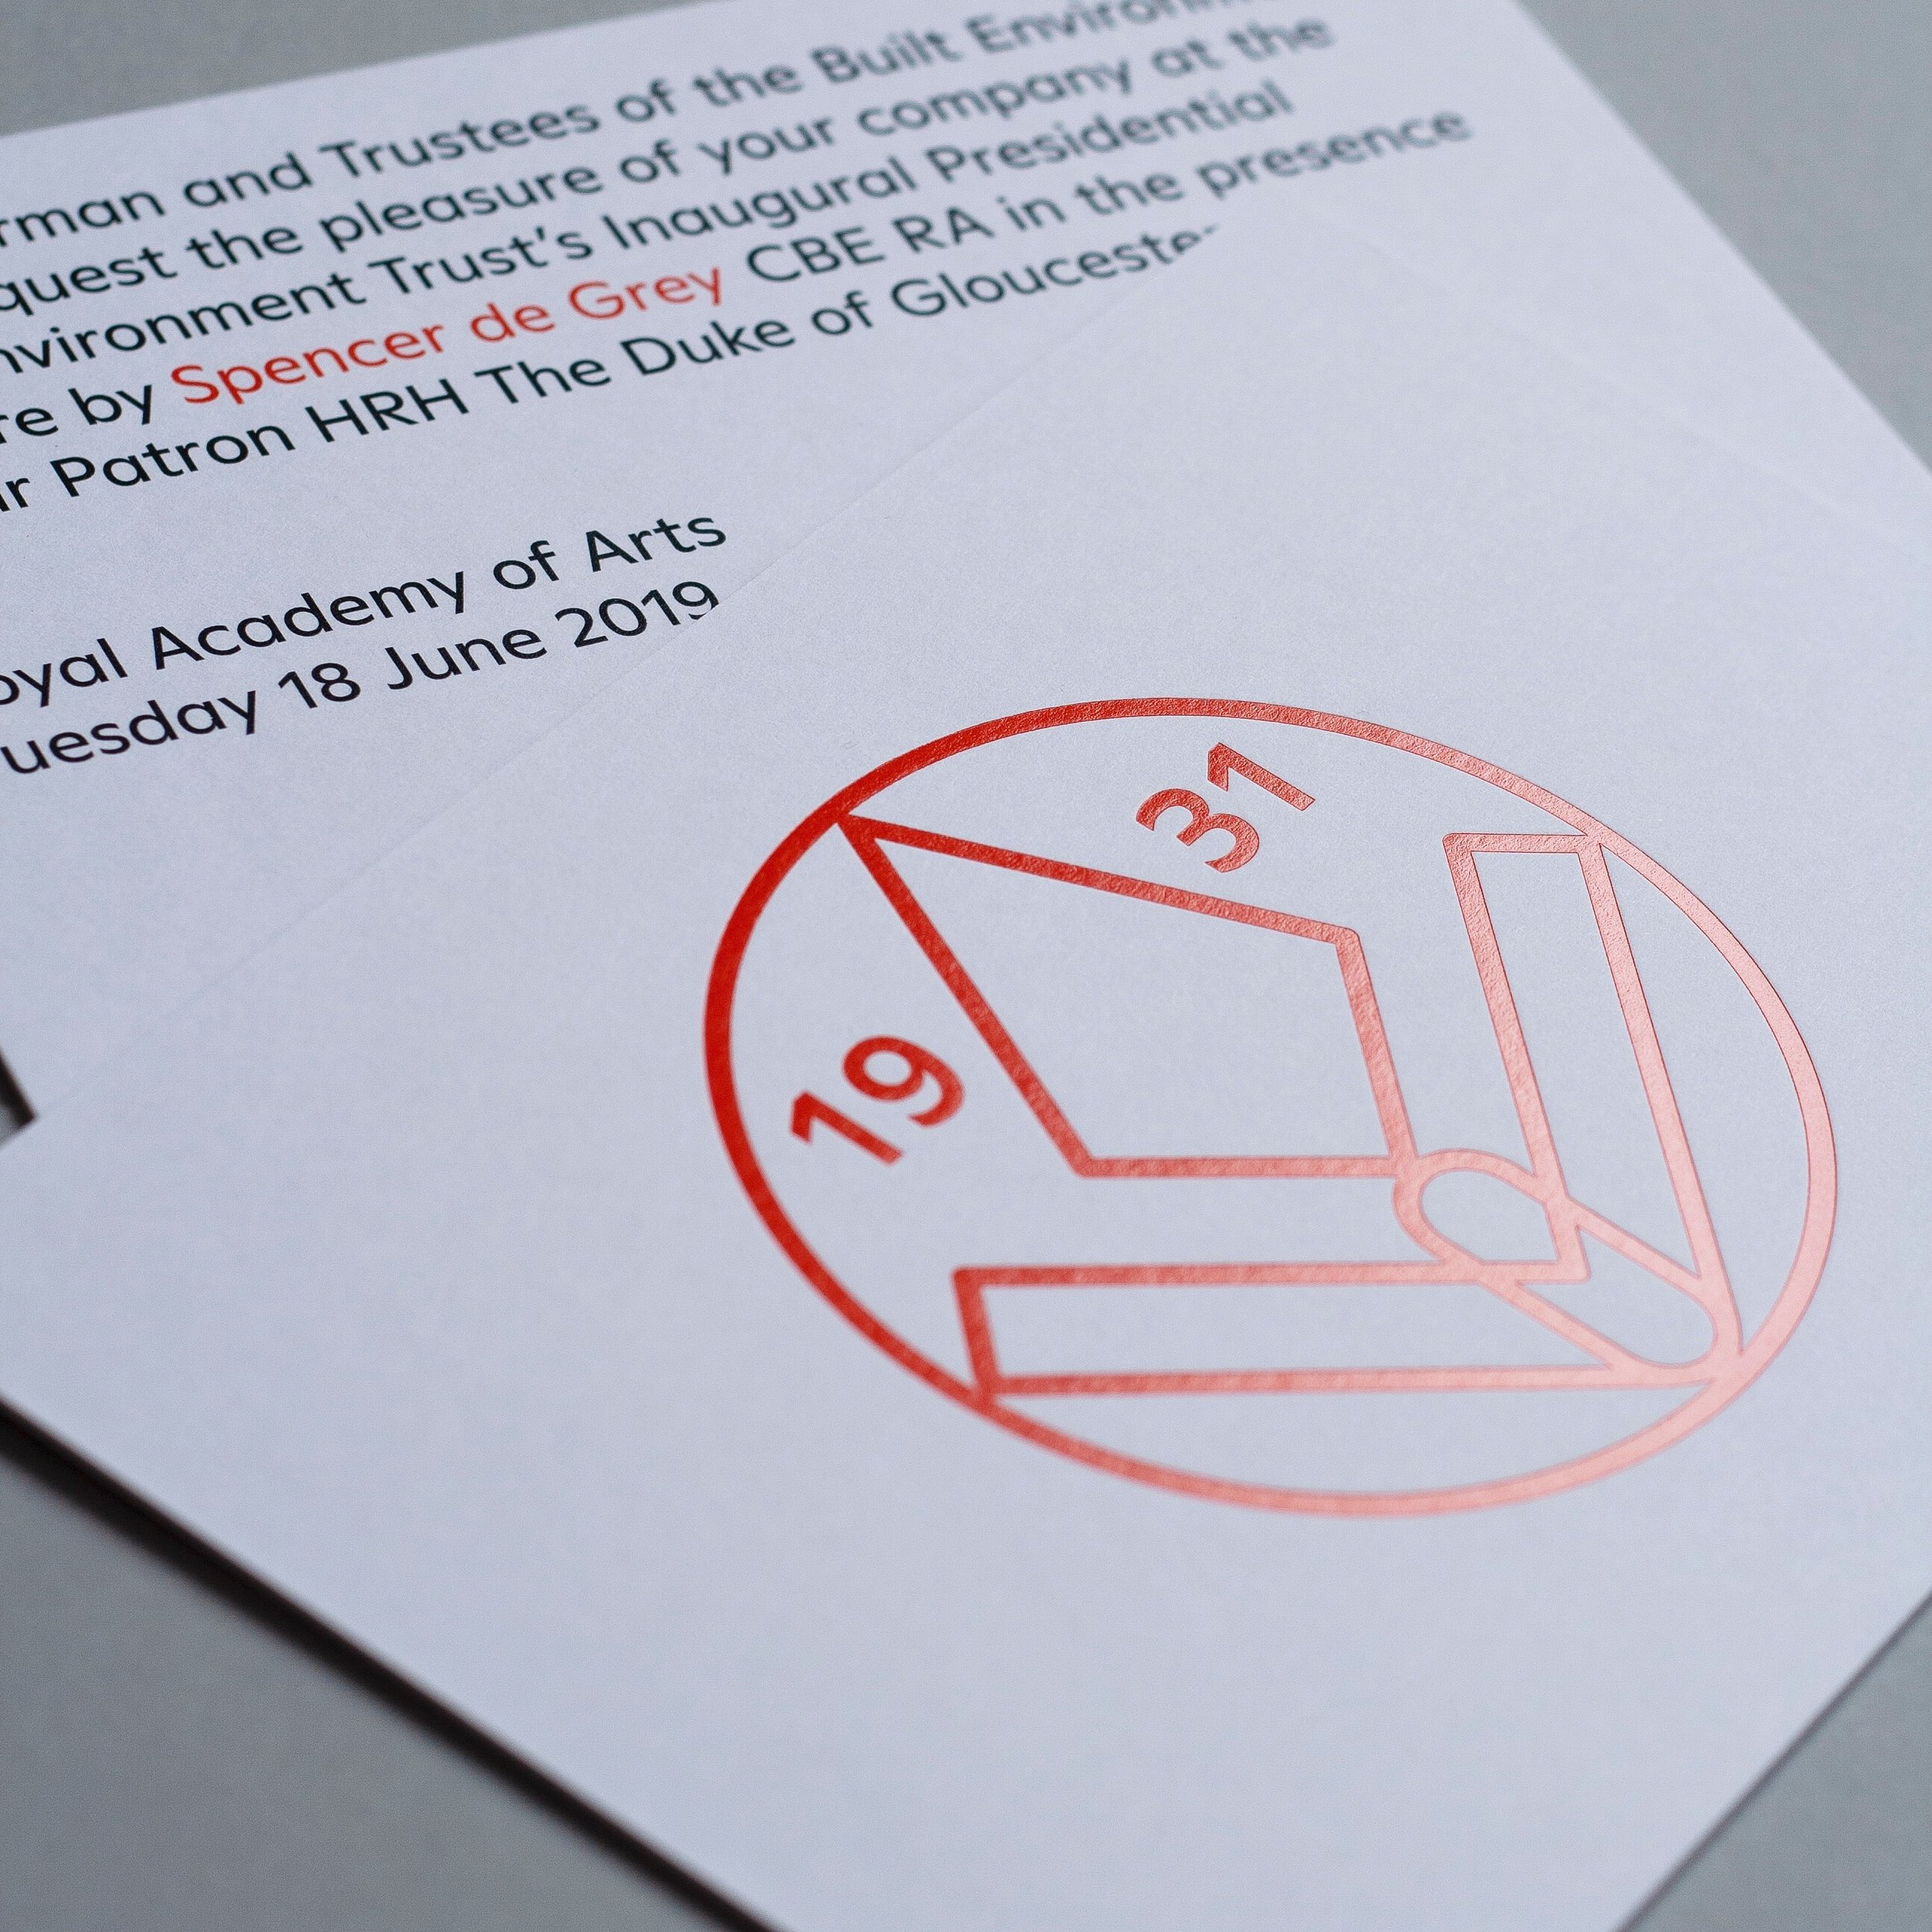 invitations printed for the built environment trust on lace white 1050gsm senses paper foil stamping [ 2500 x 2500 Pixel ]